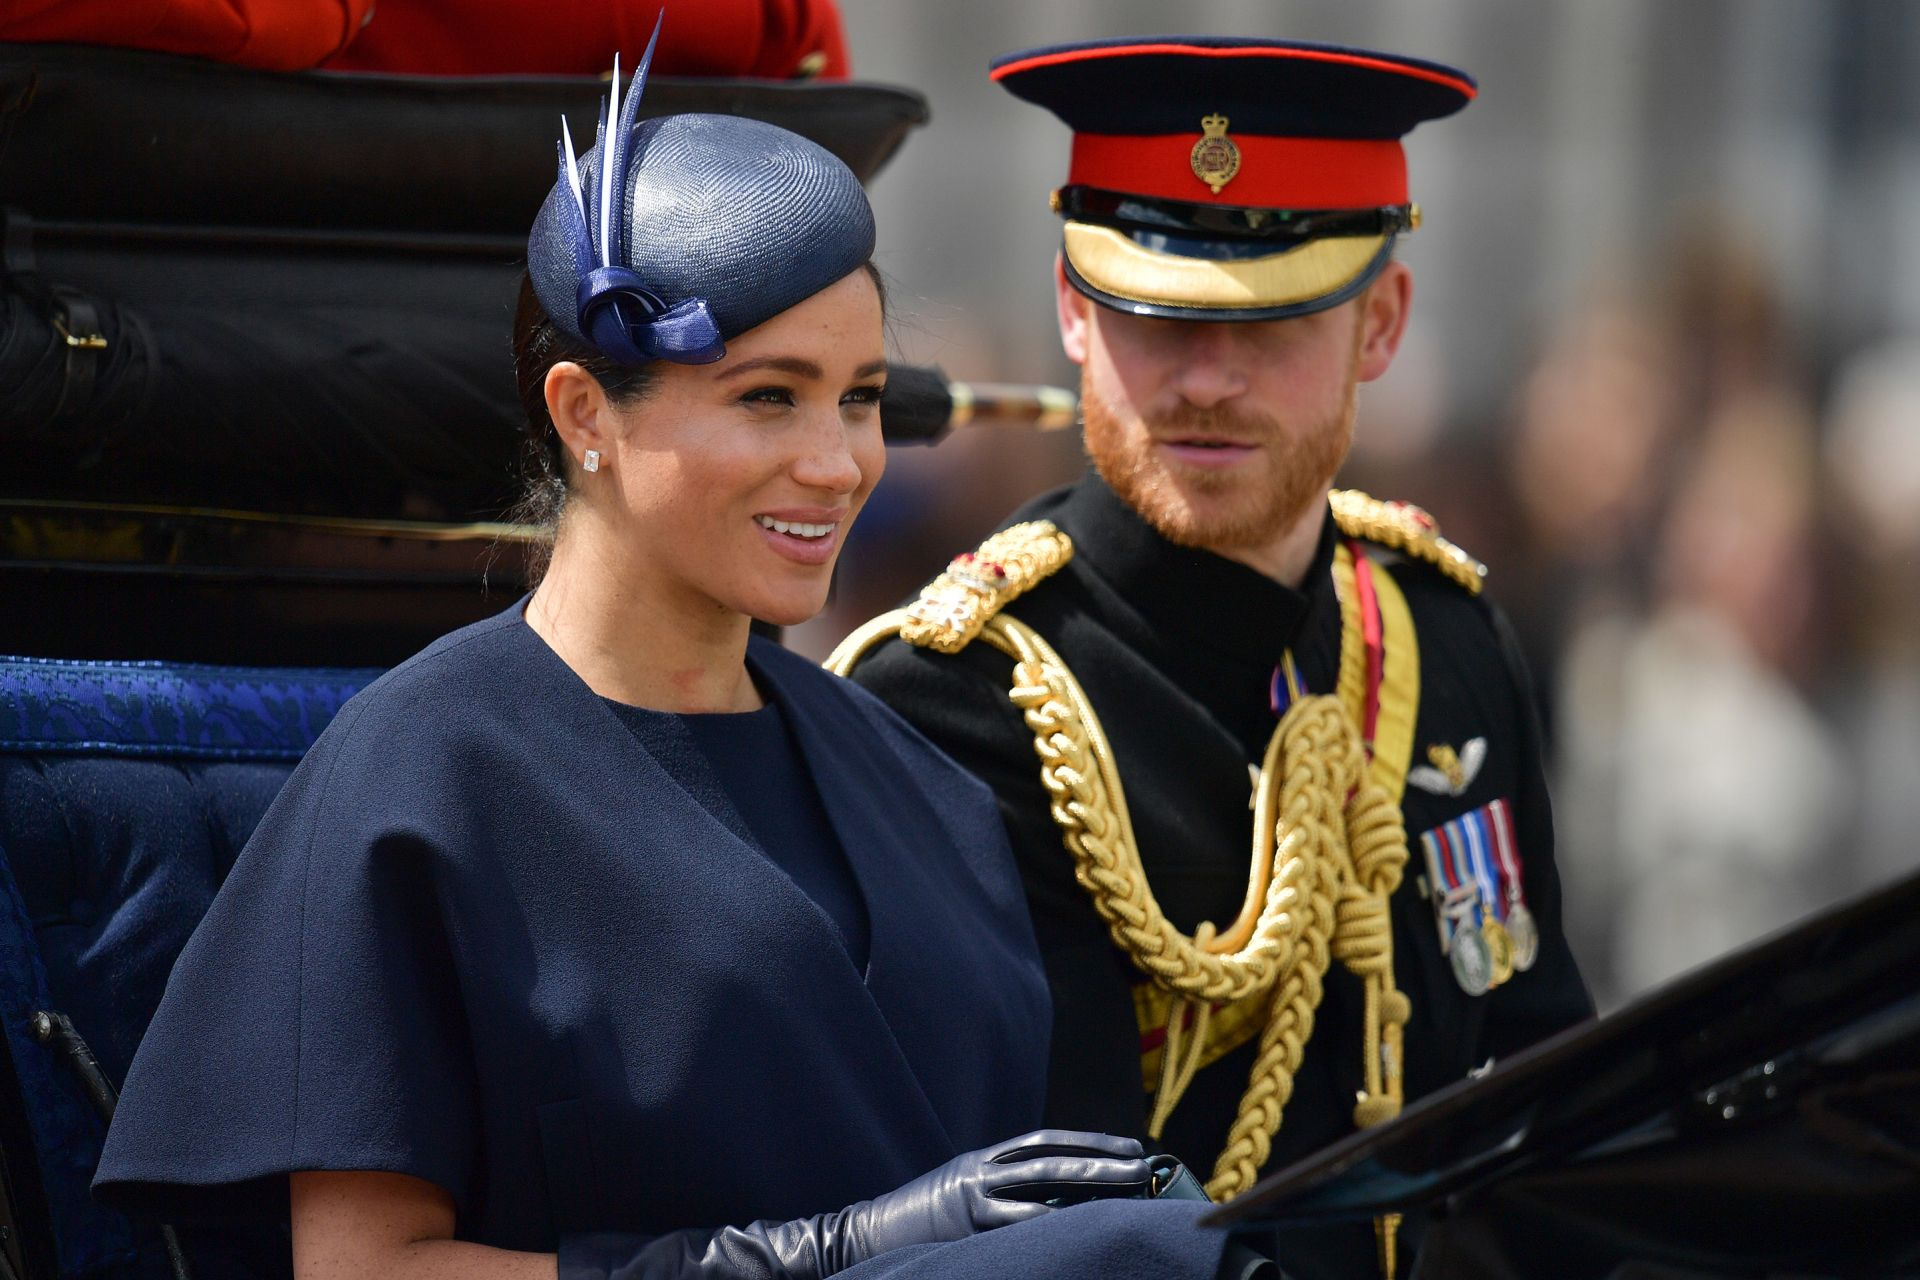 Britain's Meghan, Duchess of Sussex (L) and Britain's Prince Harry, Duke of Sussex (R) return to Buckingham Palace after the Queen's Birthday Parade, 'Trooping the Colour', in London on June 8, 2019. - The ceremony of Trooping the Colour is believed to have first been performed during the reign of King Charles II. Since 1748, the Trooping of the Colour has marked the official birthday of the British Sovereign. Over 1400 parading soldiers, almost 300 horses and 400 musicians take part in the event. (Photo by